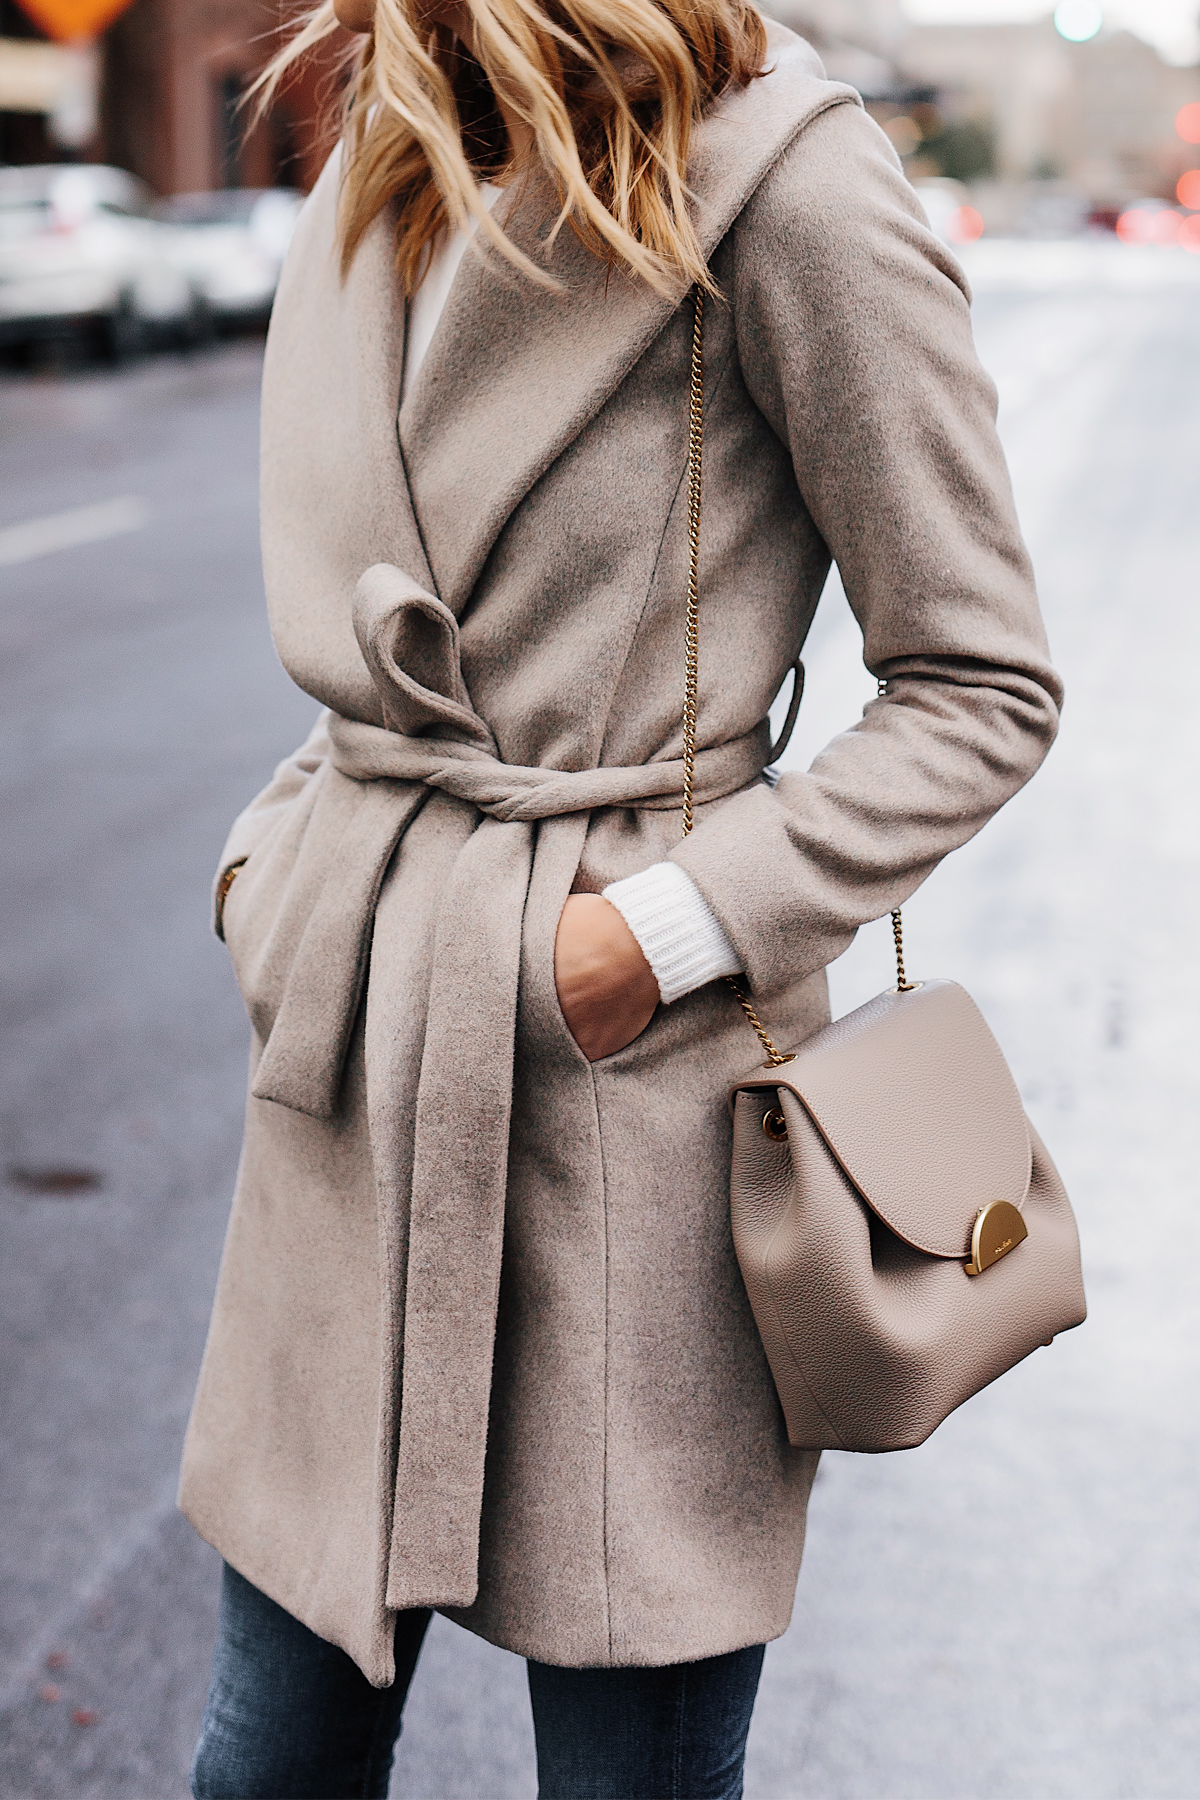 Blonde Woman Wearing Ann Taylor Beige Wrap Coat Polene Grey Handbag Fashion Jackson San Diego Fashion Blogger Street Style